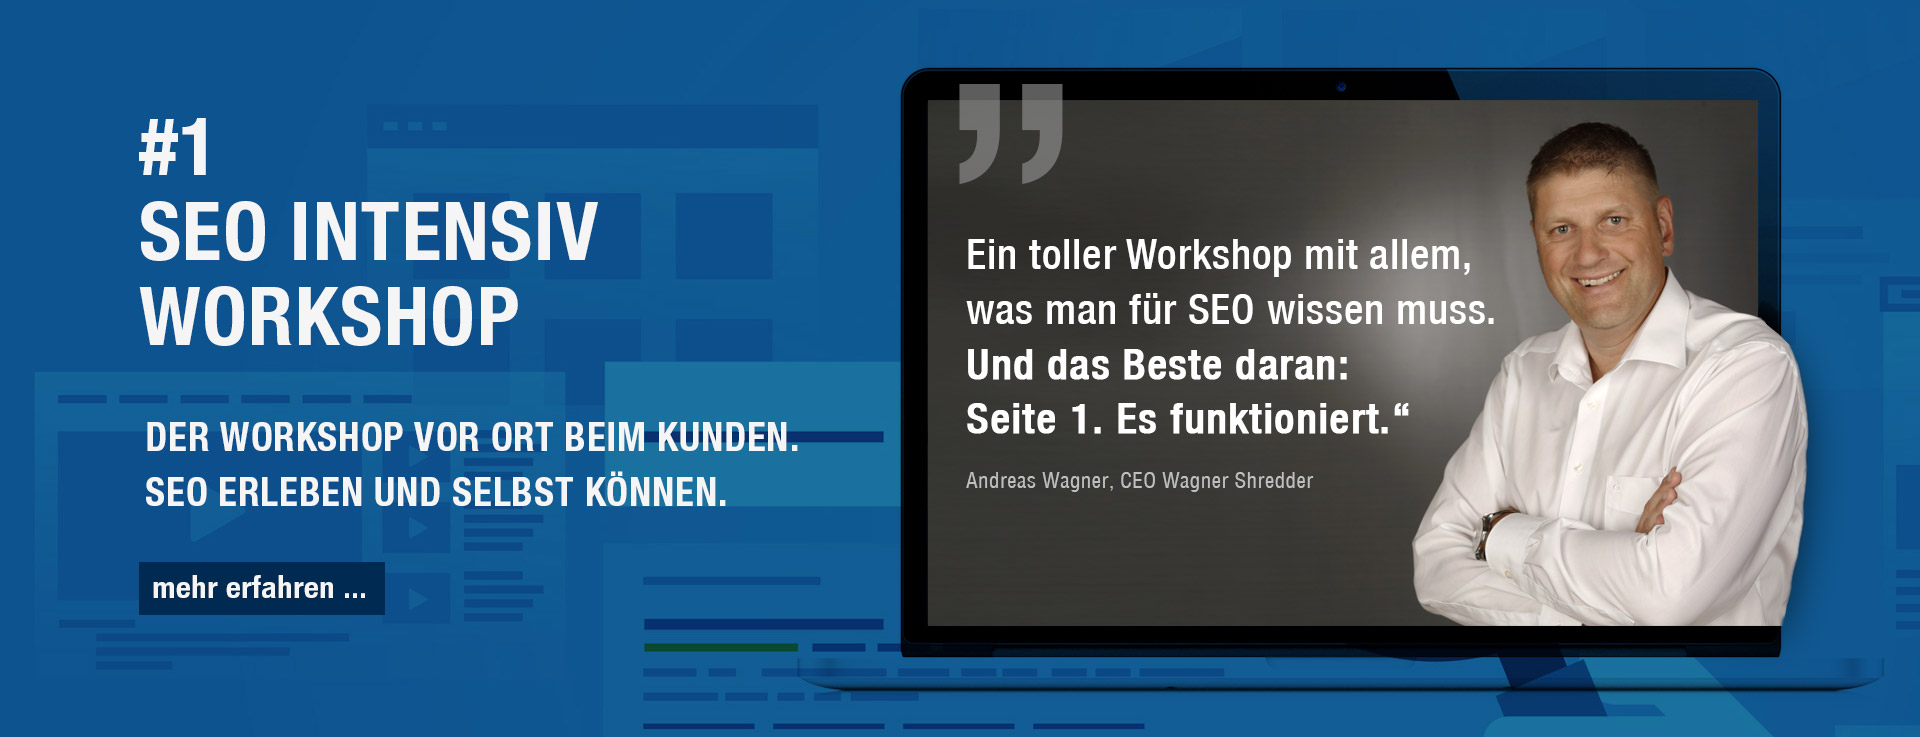 SEO Agentur Wien SEO Workshop Wien